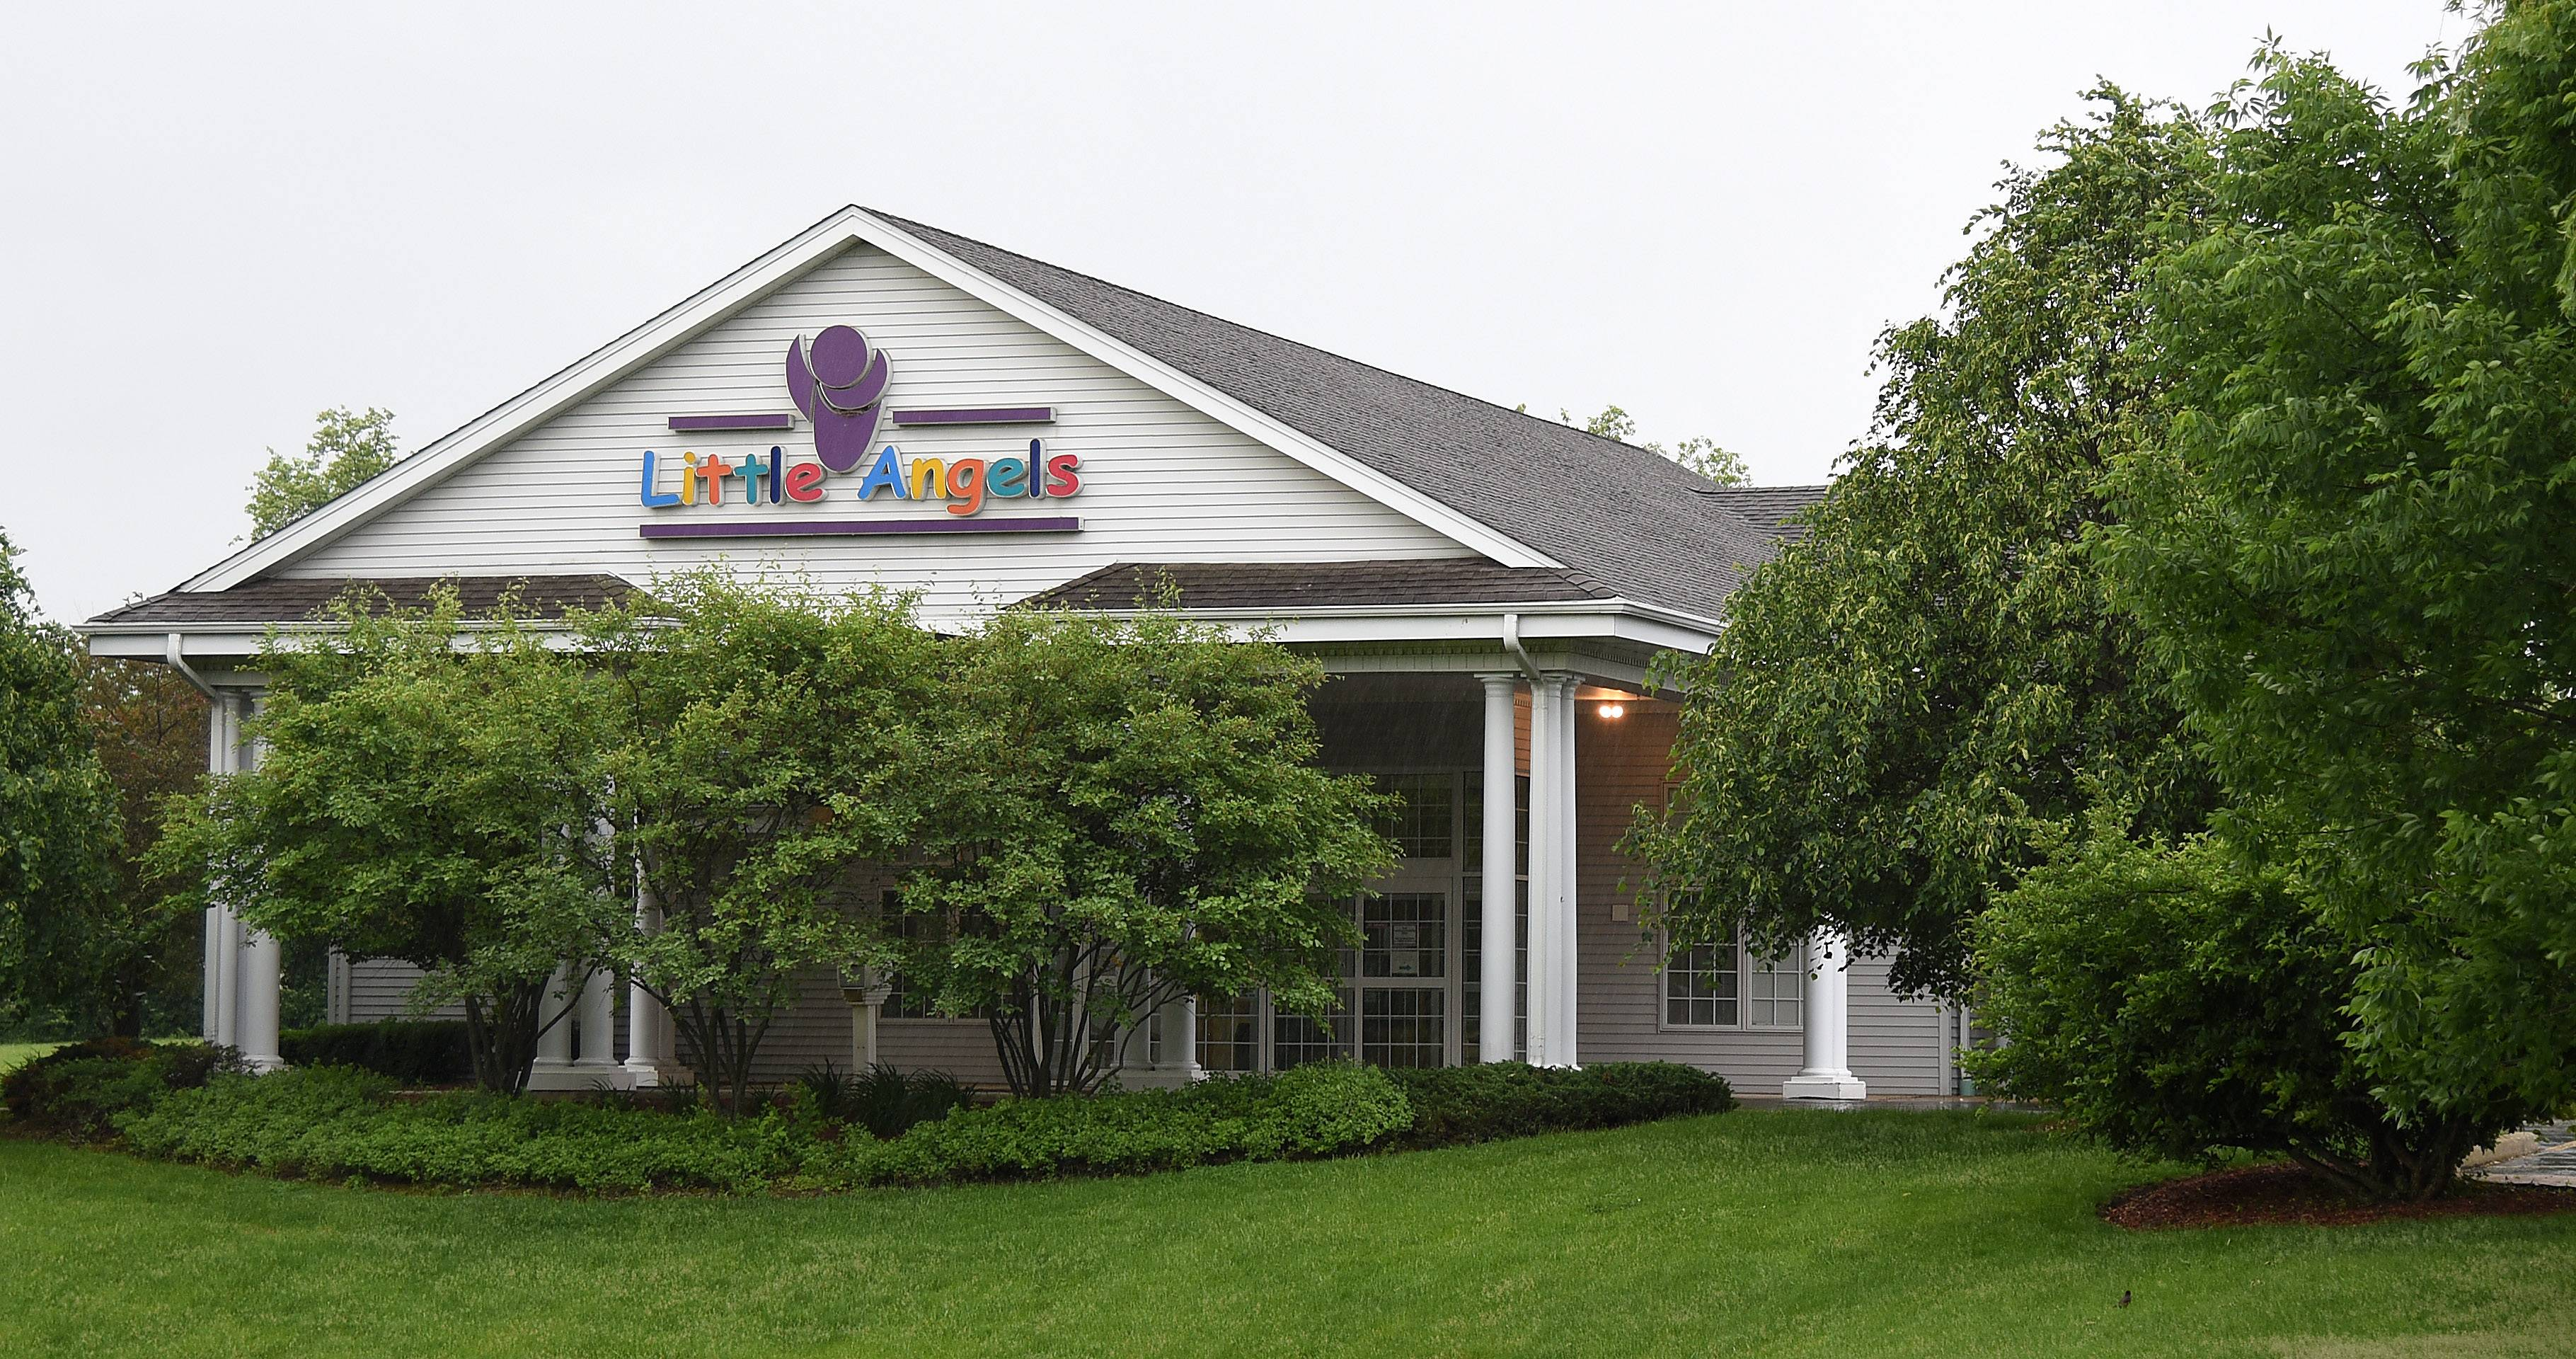 Geneva-based Marklund and Elgin-based Little Angels, which serve profoundly physically and developmentally disabled people, on Tuesday announced a merger.